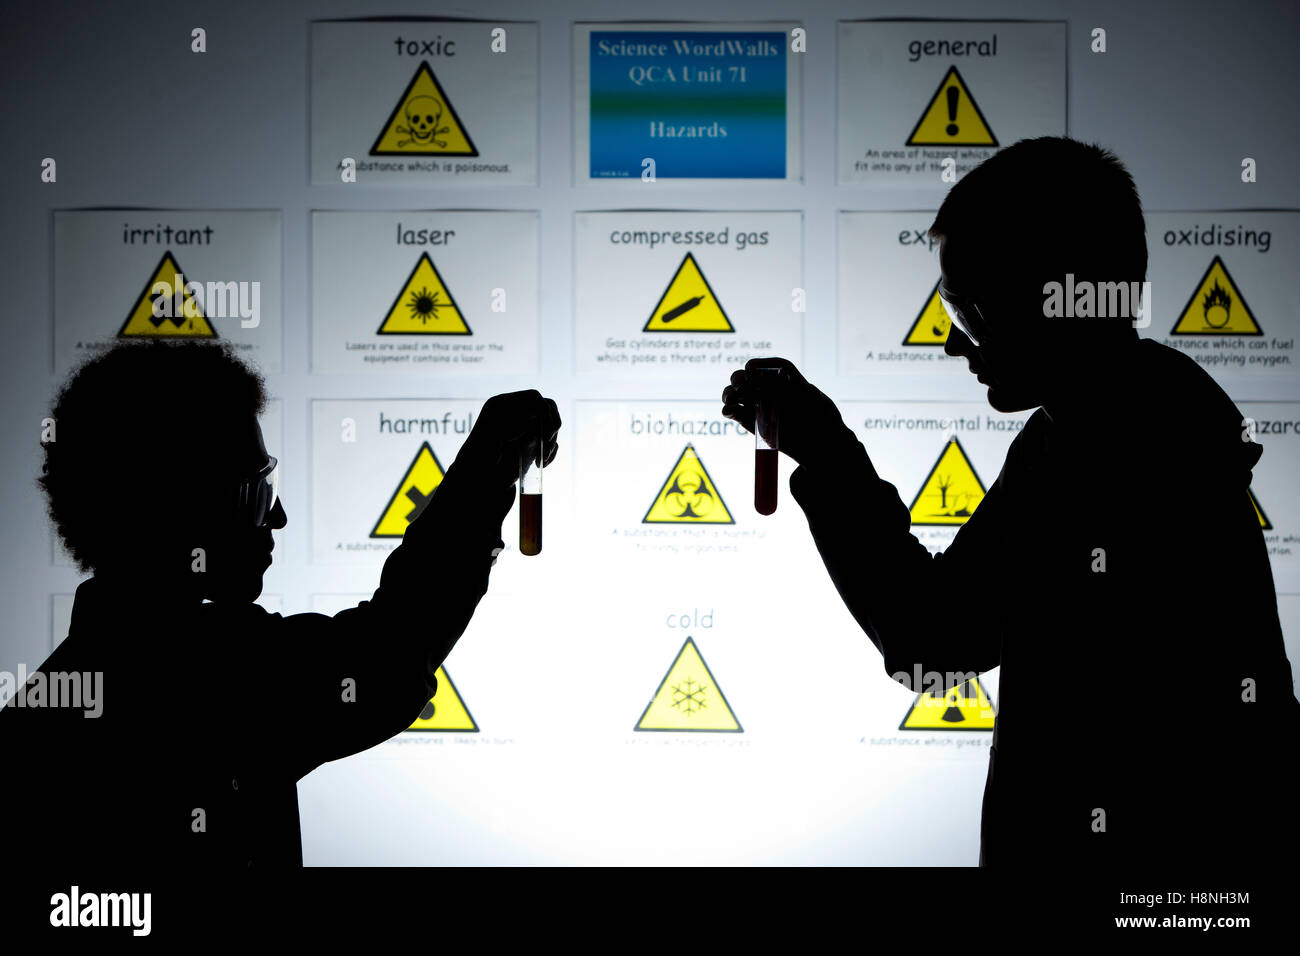 teenage pupils during a Forensic science lesson at school - Stock Image